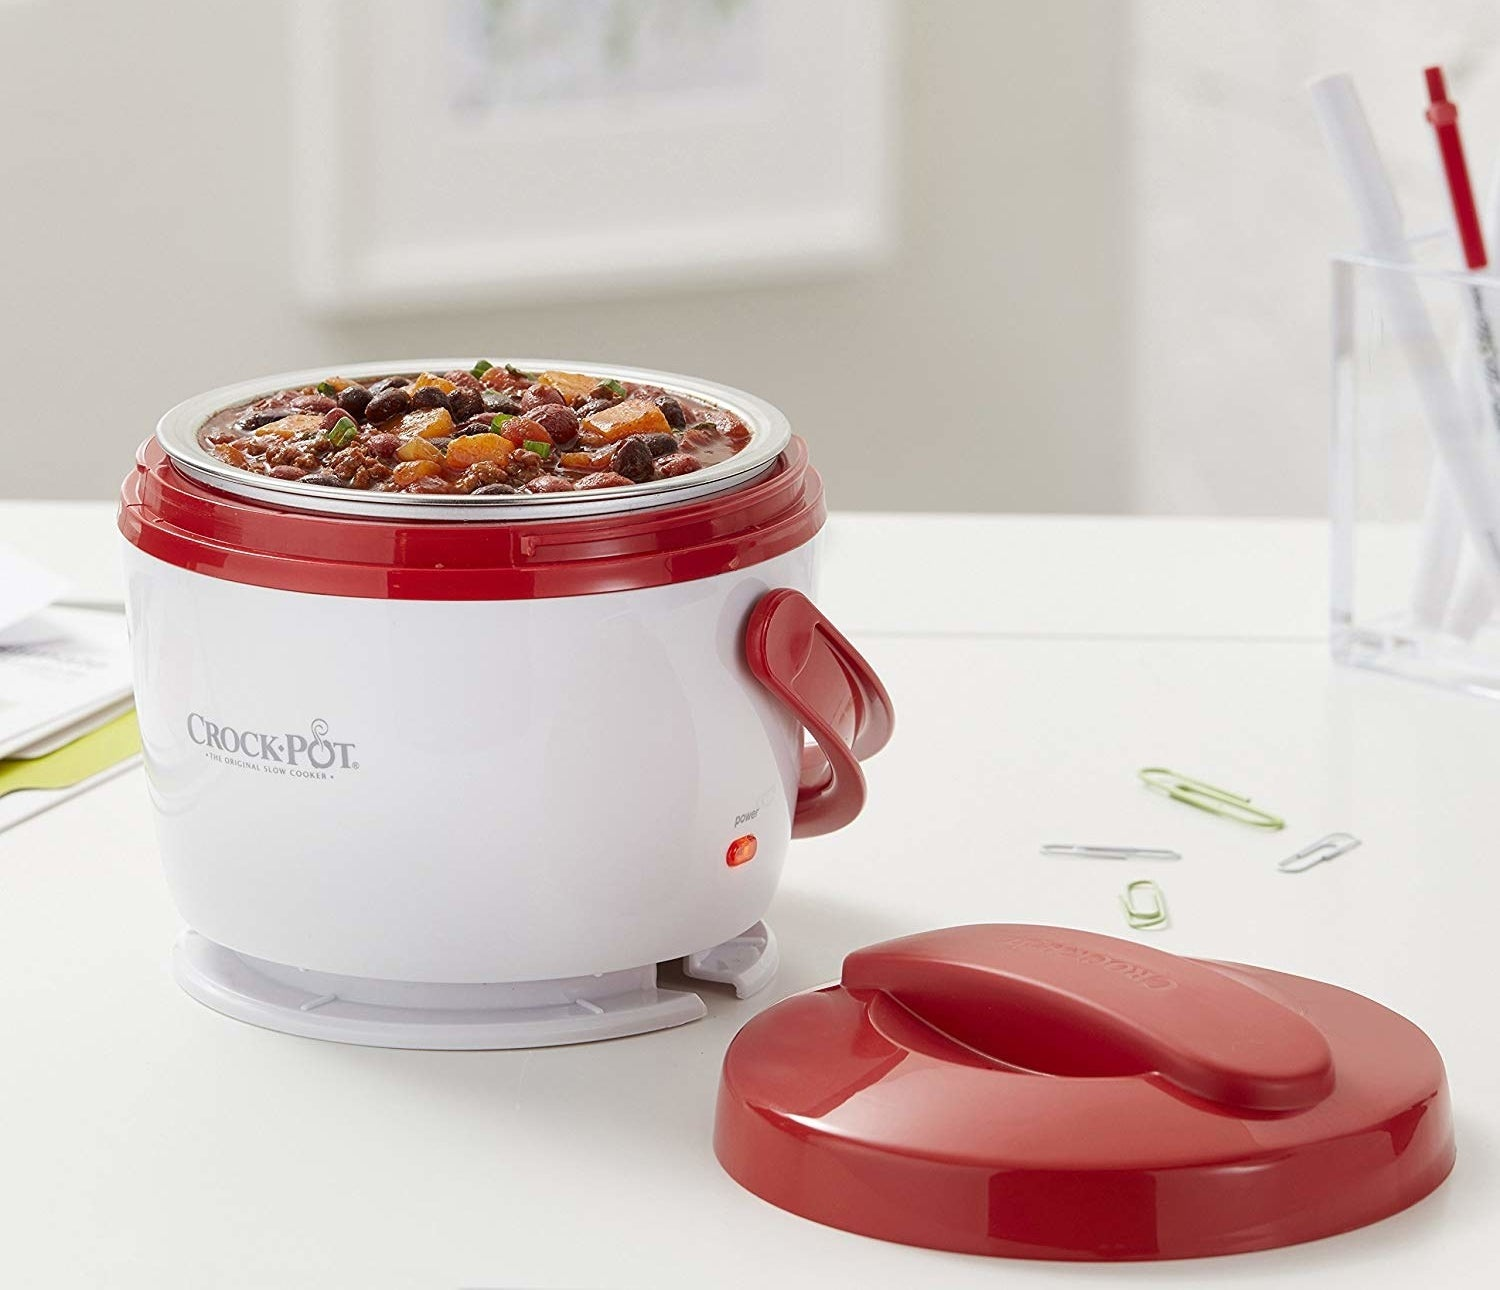 A mini Crock-Pot filled with food